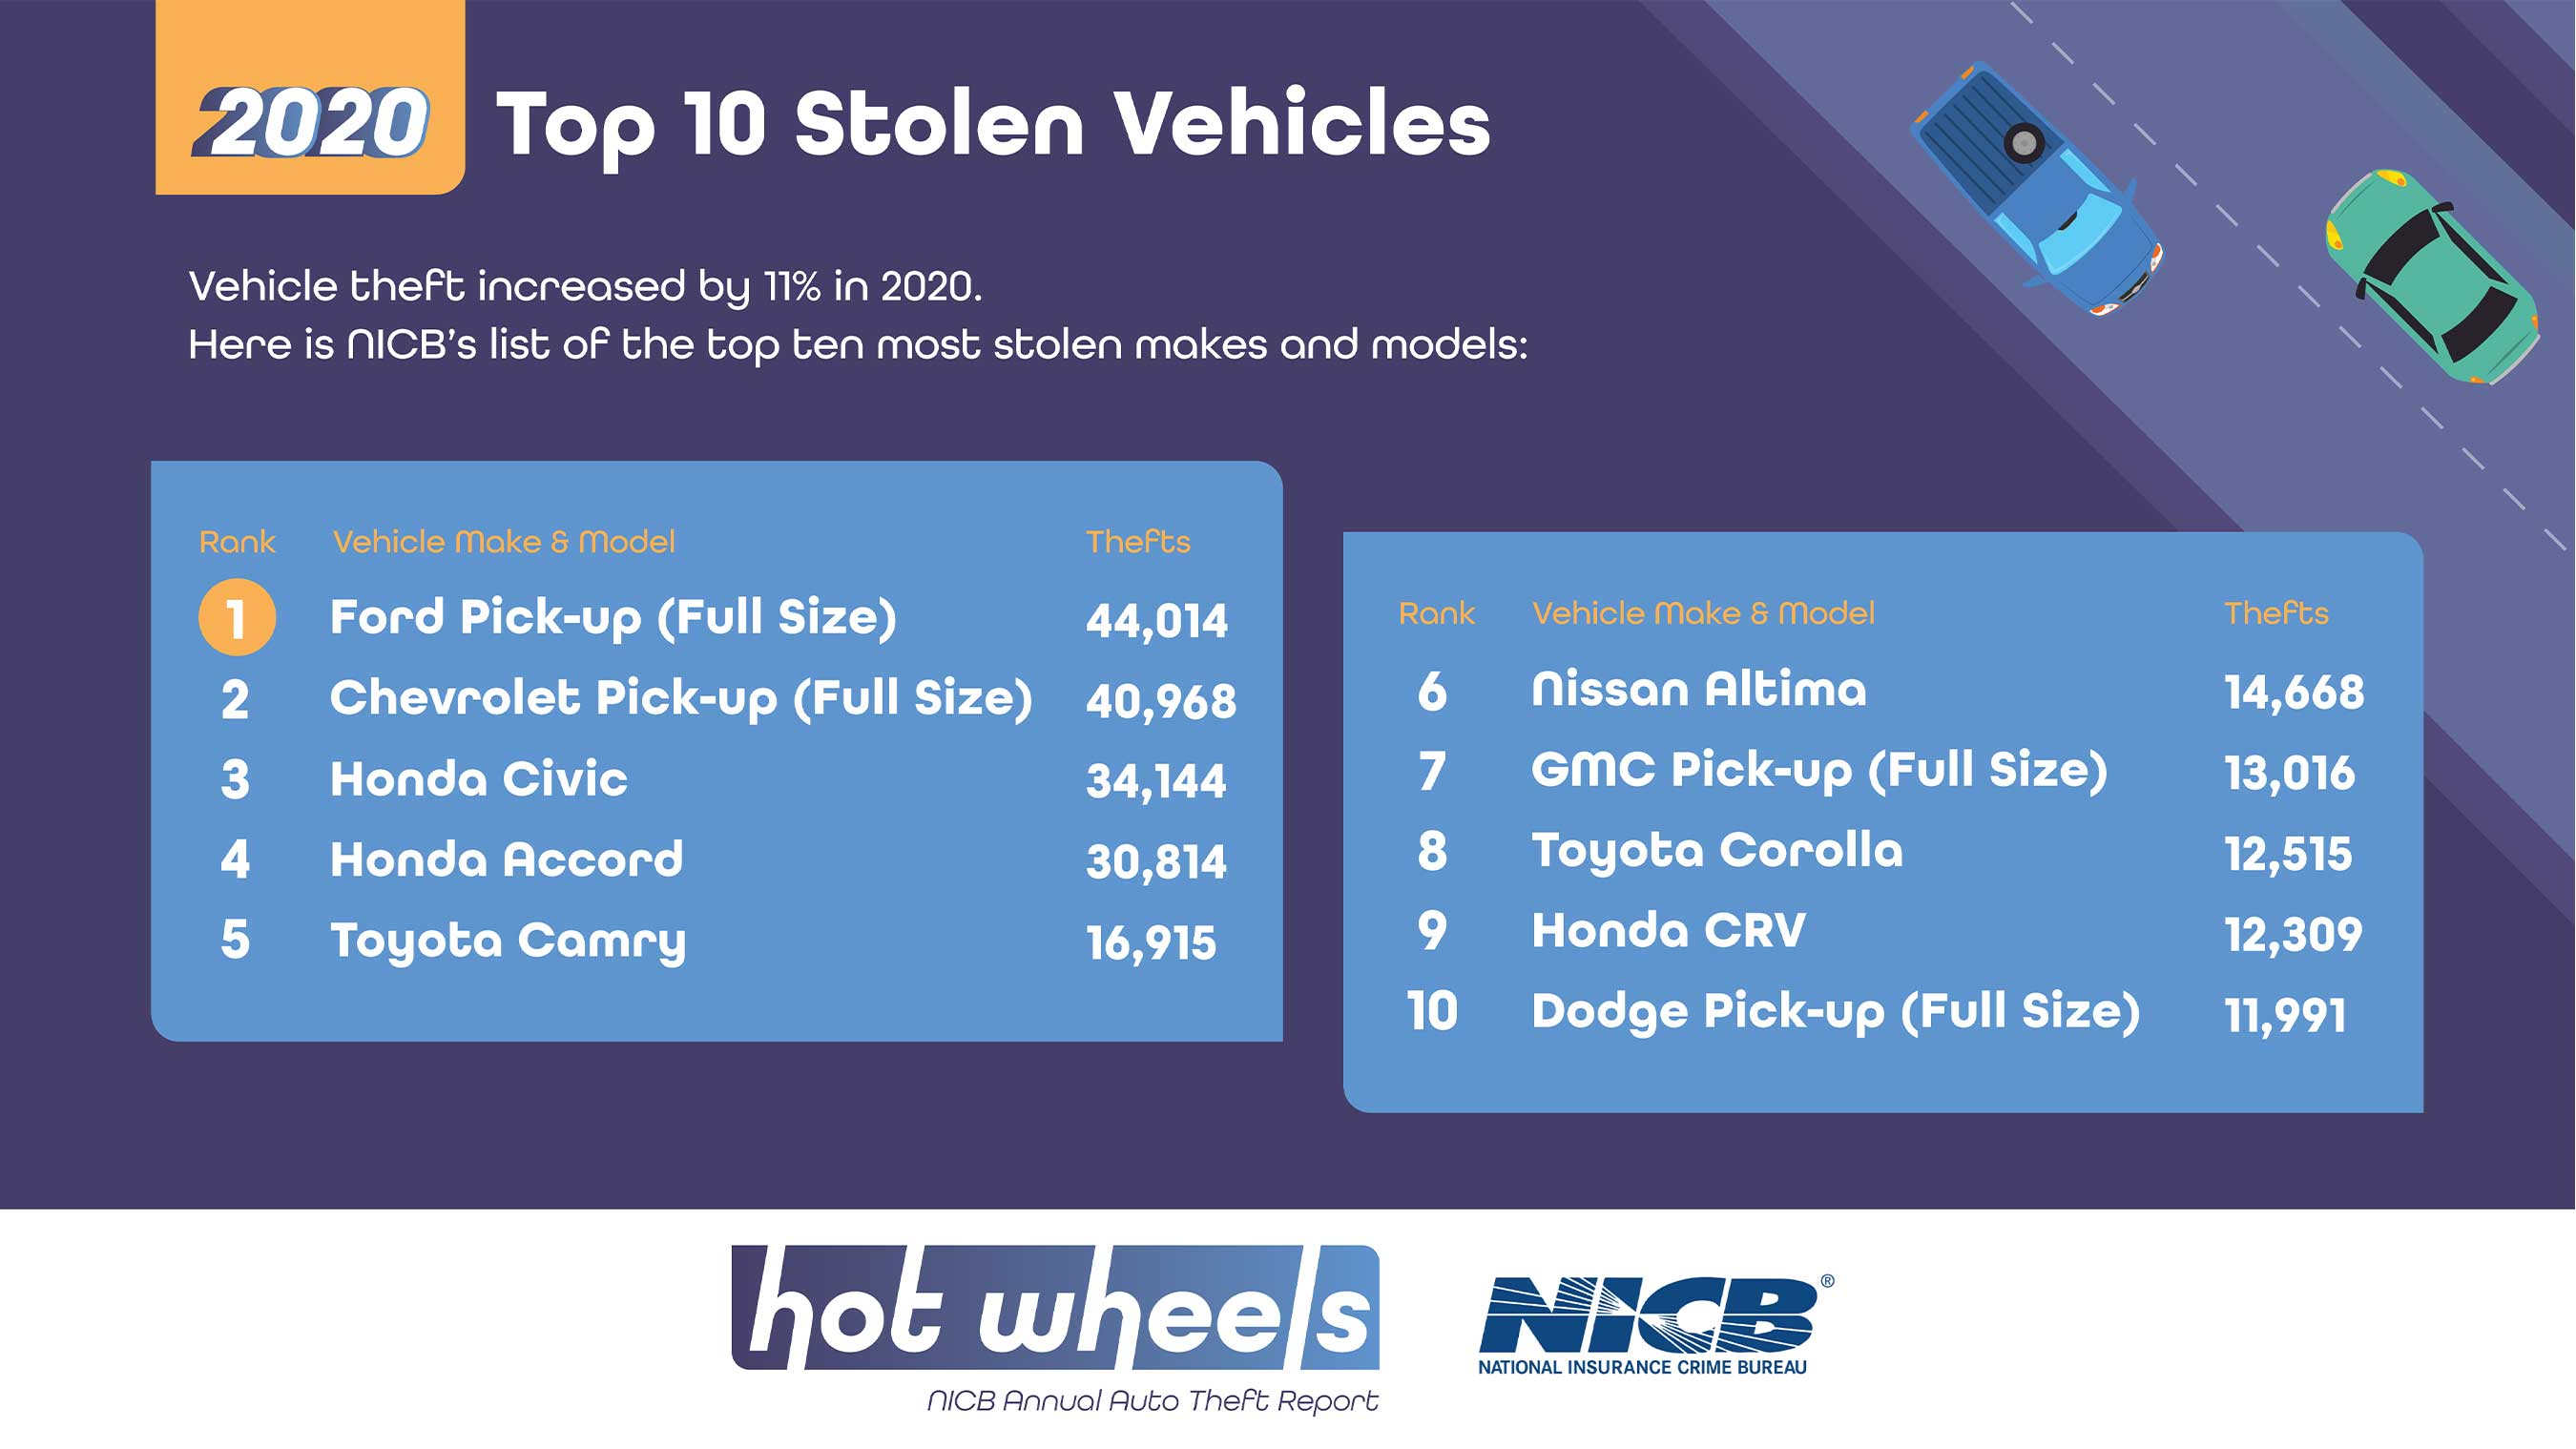 Ford, Chevy, GMC, and Dodge full size pick-ups popular among thieves in certain states.